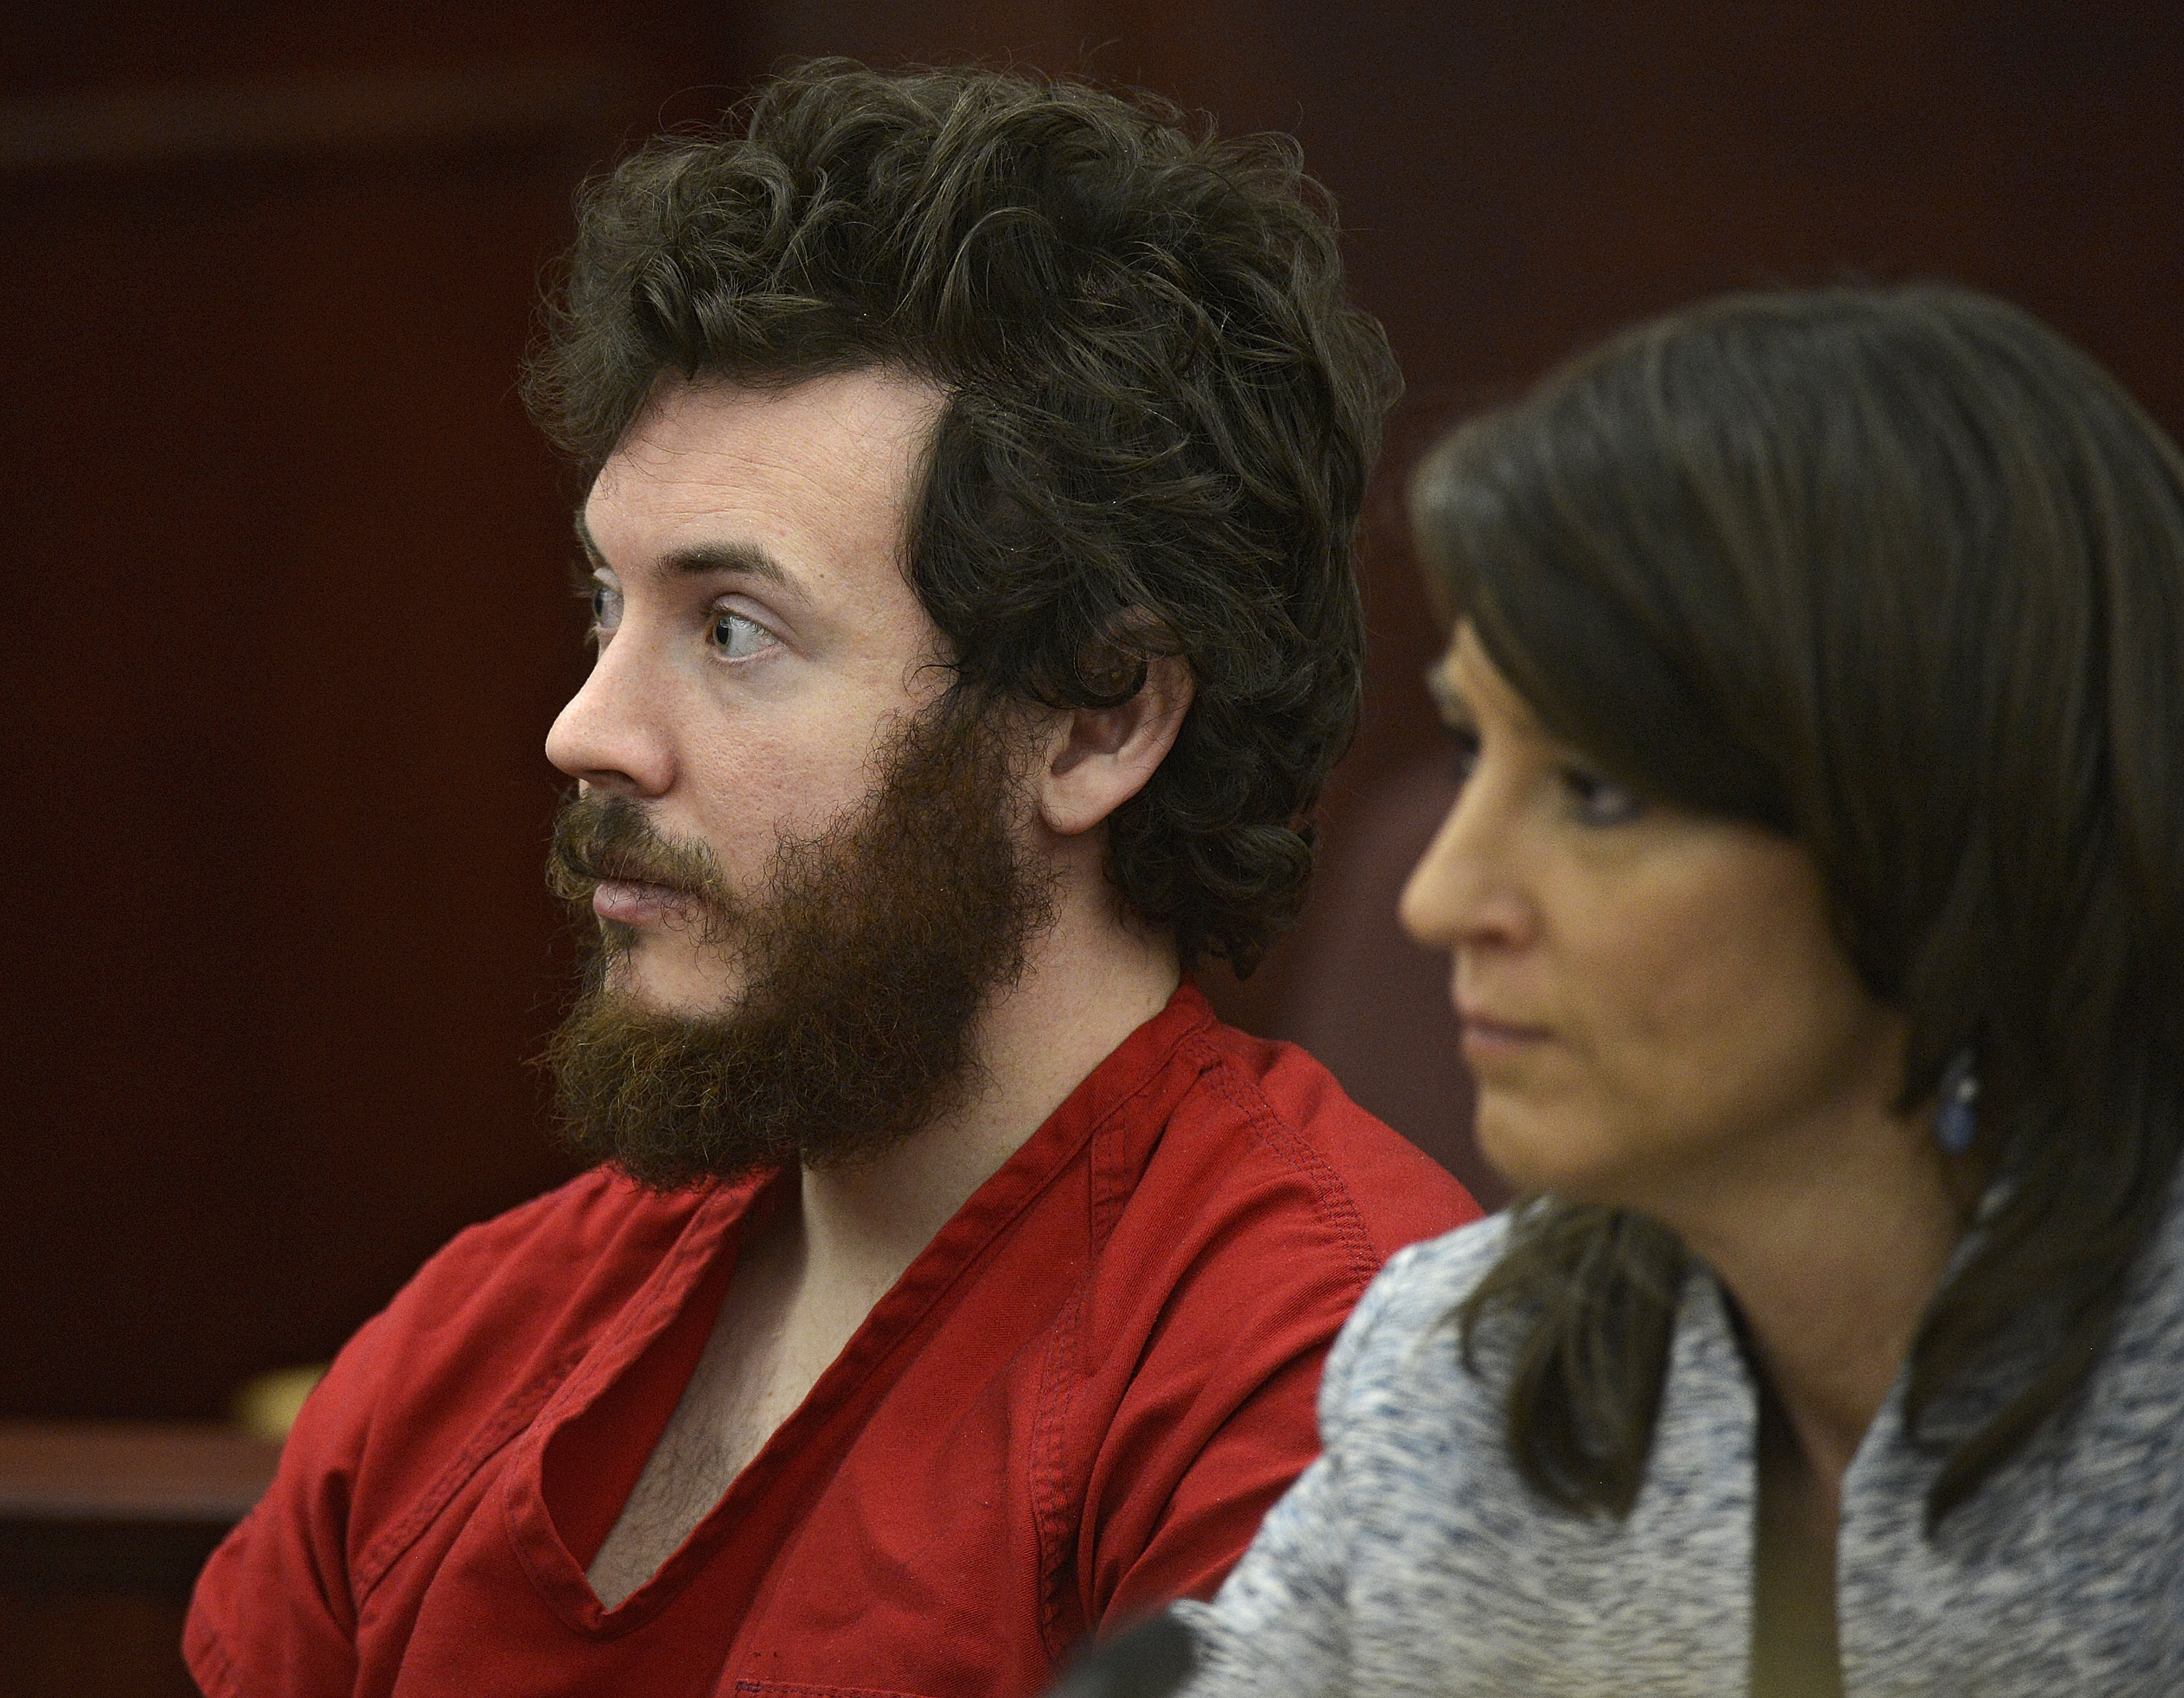 The Latest: James Holmes interview touches on family, faith